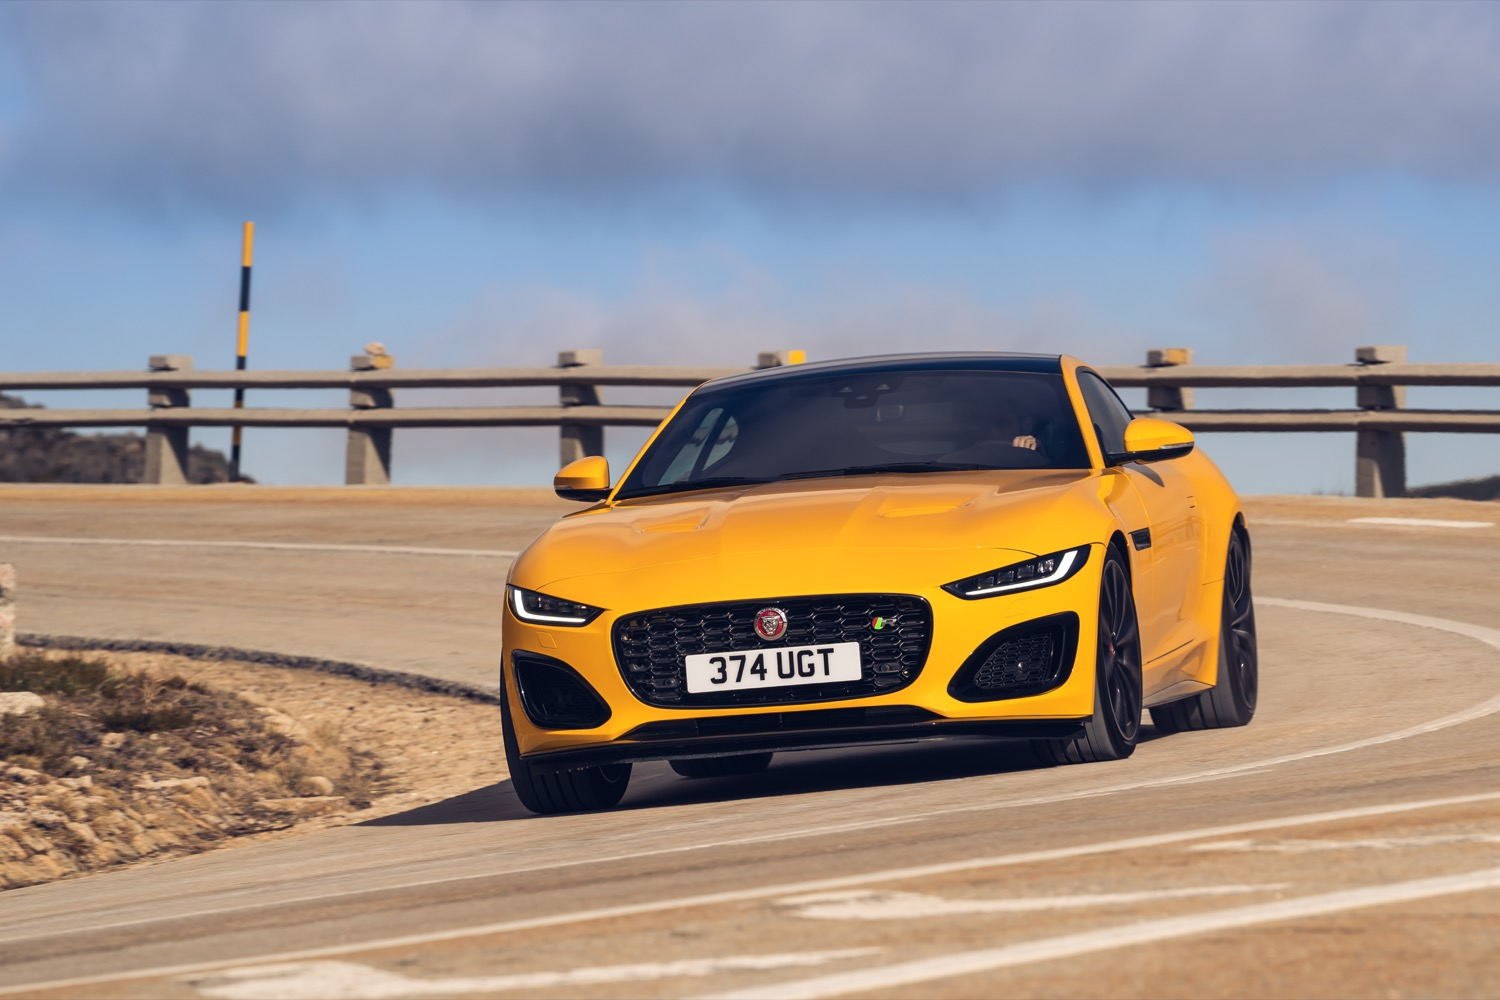 2020_jaguar_ftype_v8_awd_coupe_yellow_test_10